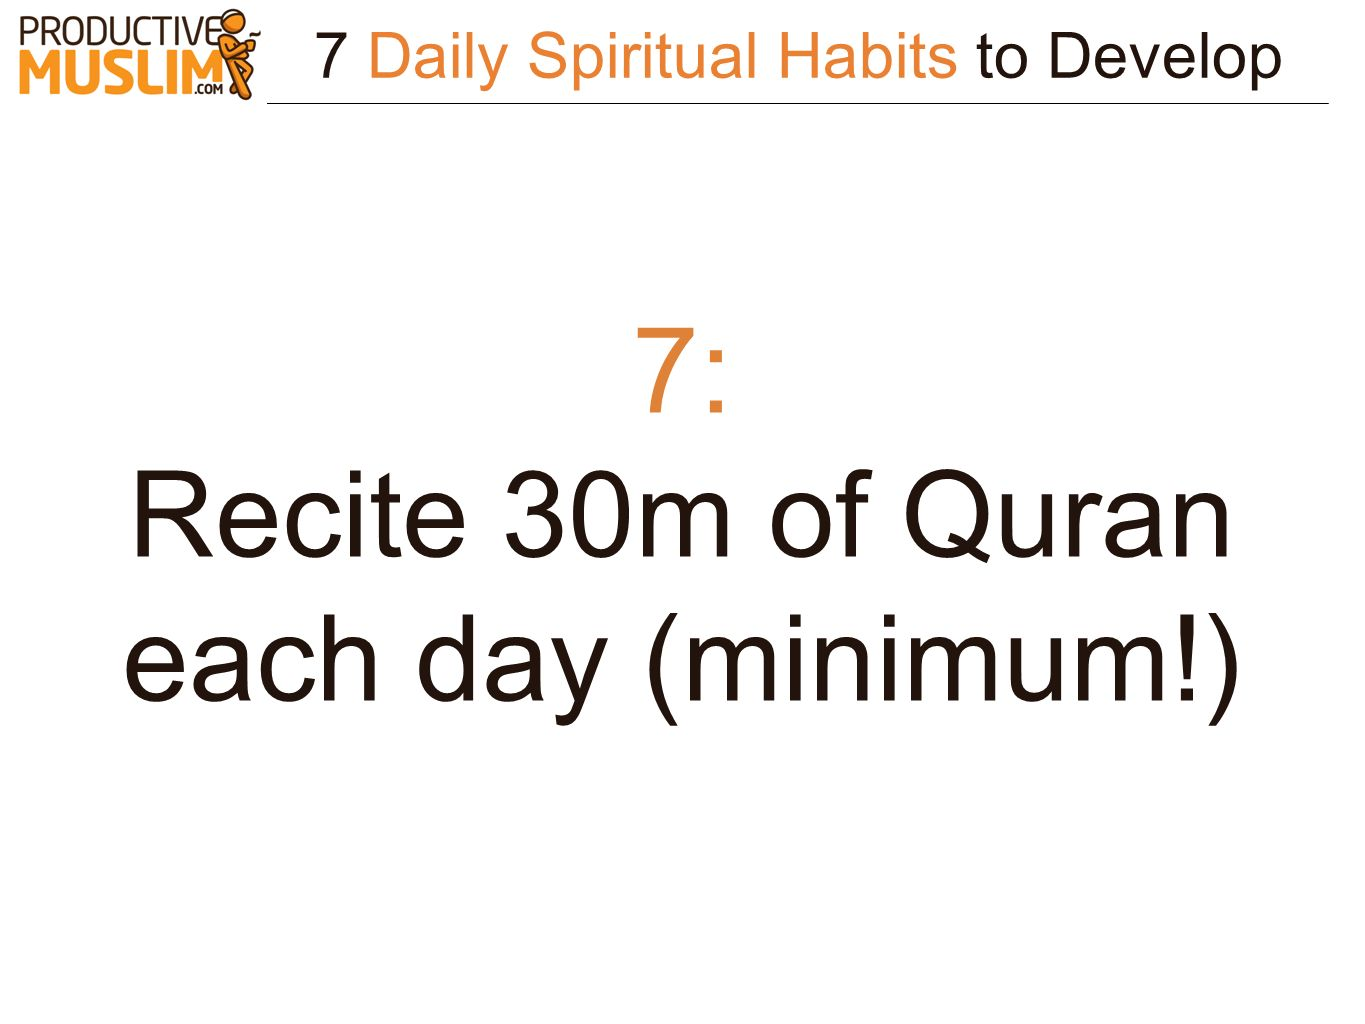 Recite 30m of Quran each day (minimum!)